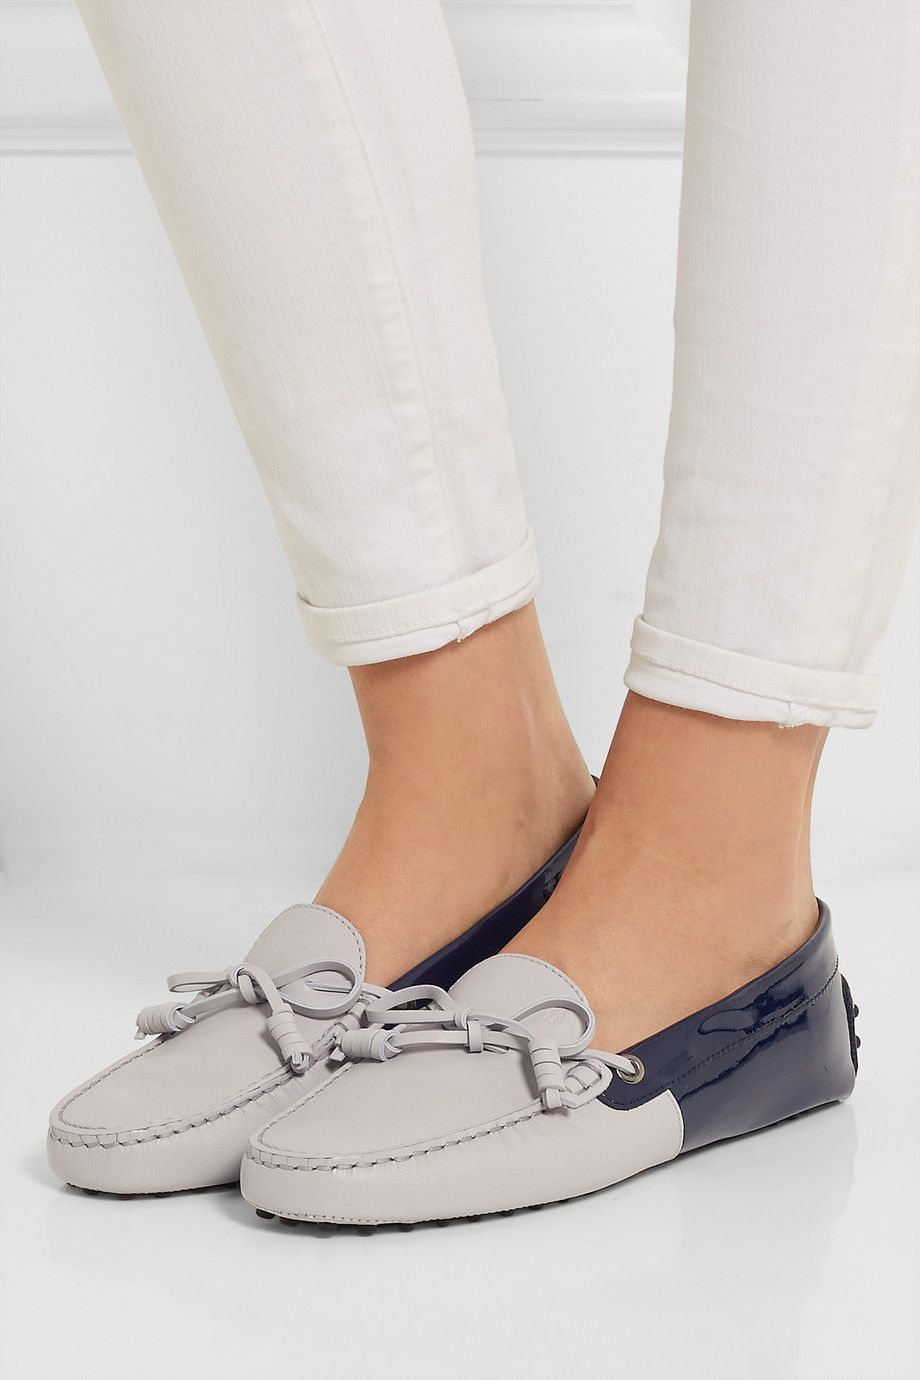 Tod's | Gommino two-tone leather loafers #gommino #tods #women #summer